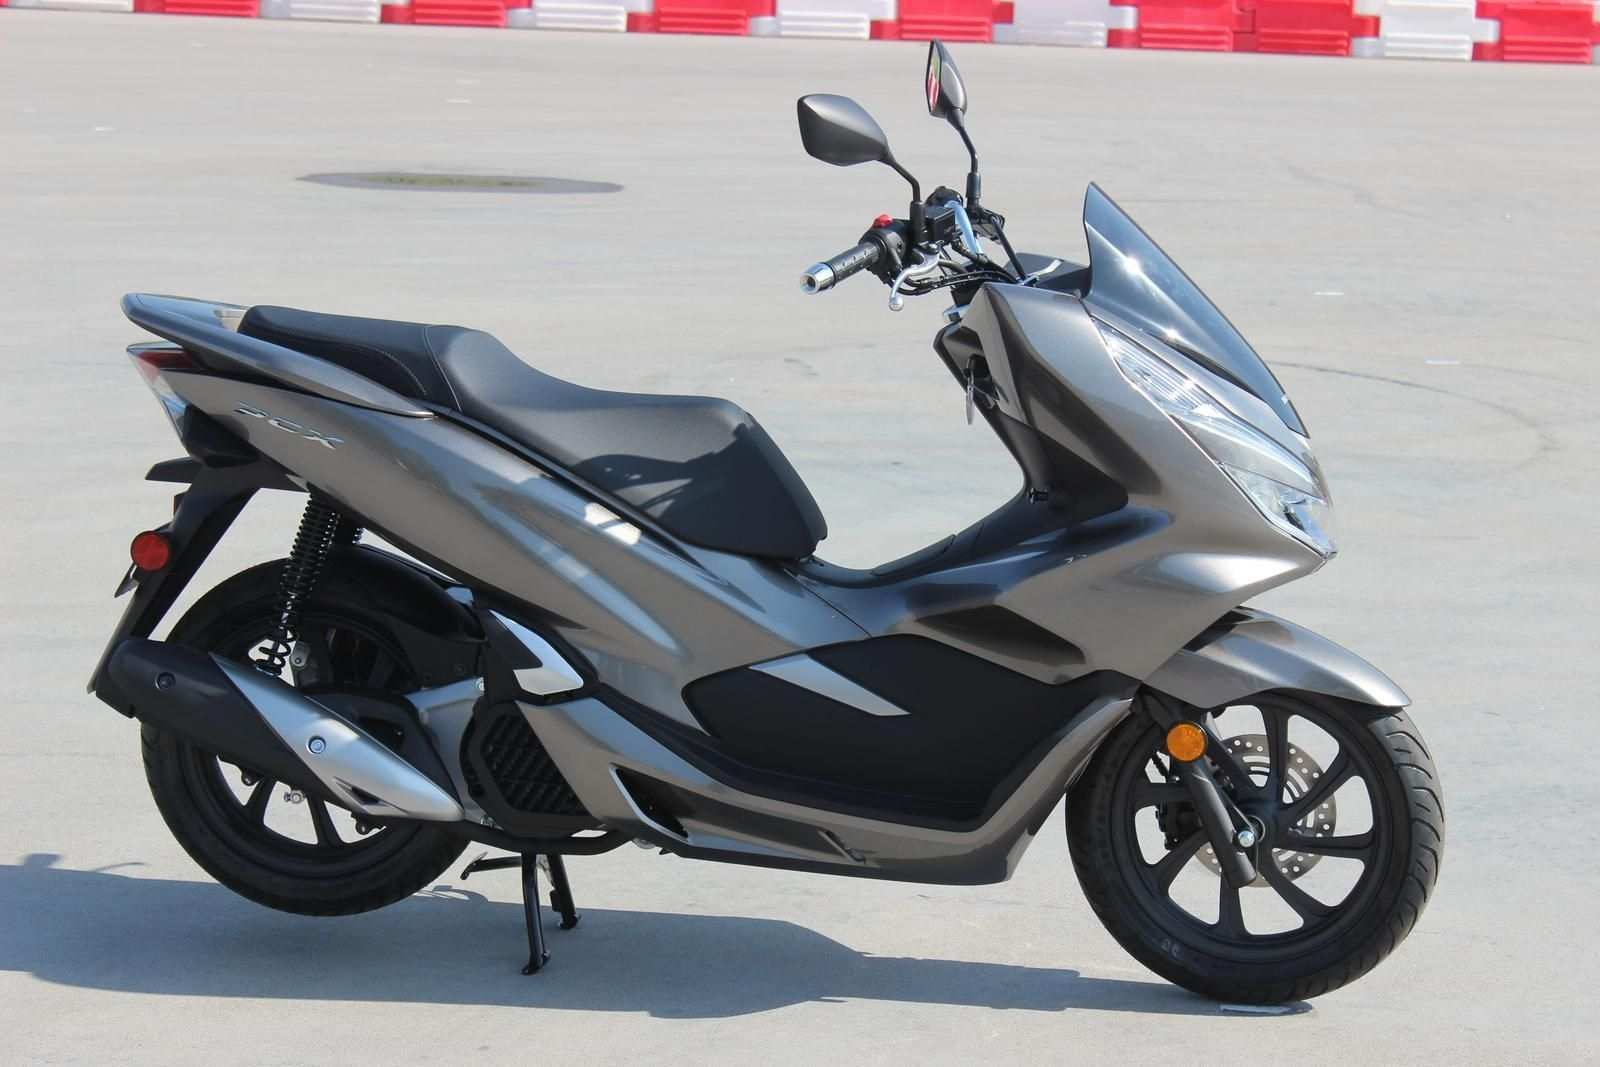 89 Concept of New 2019 Honda Pcx150 Redesign Rumors by New 2019 Honda Pcx150 Redesign